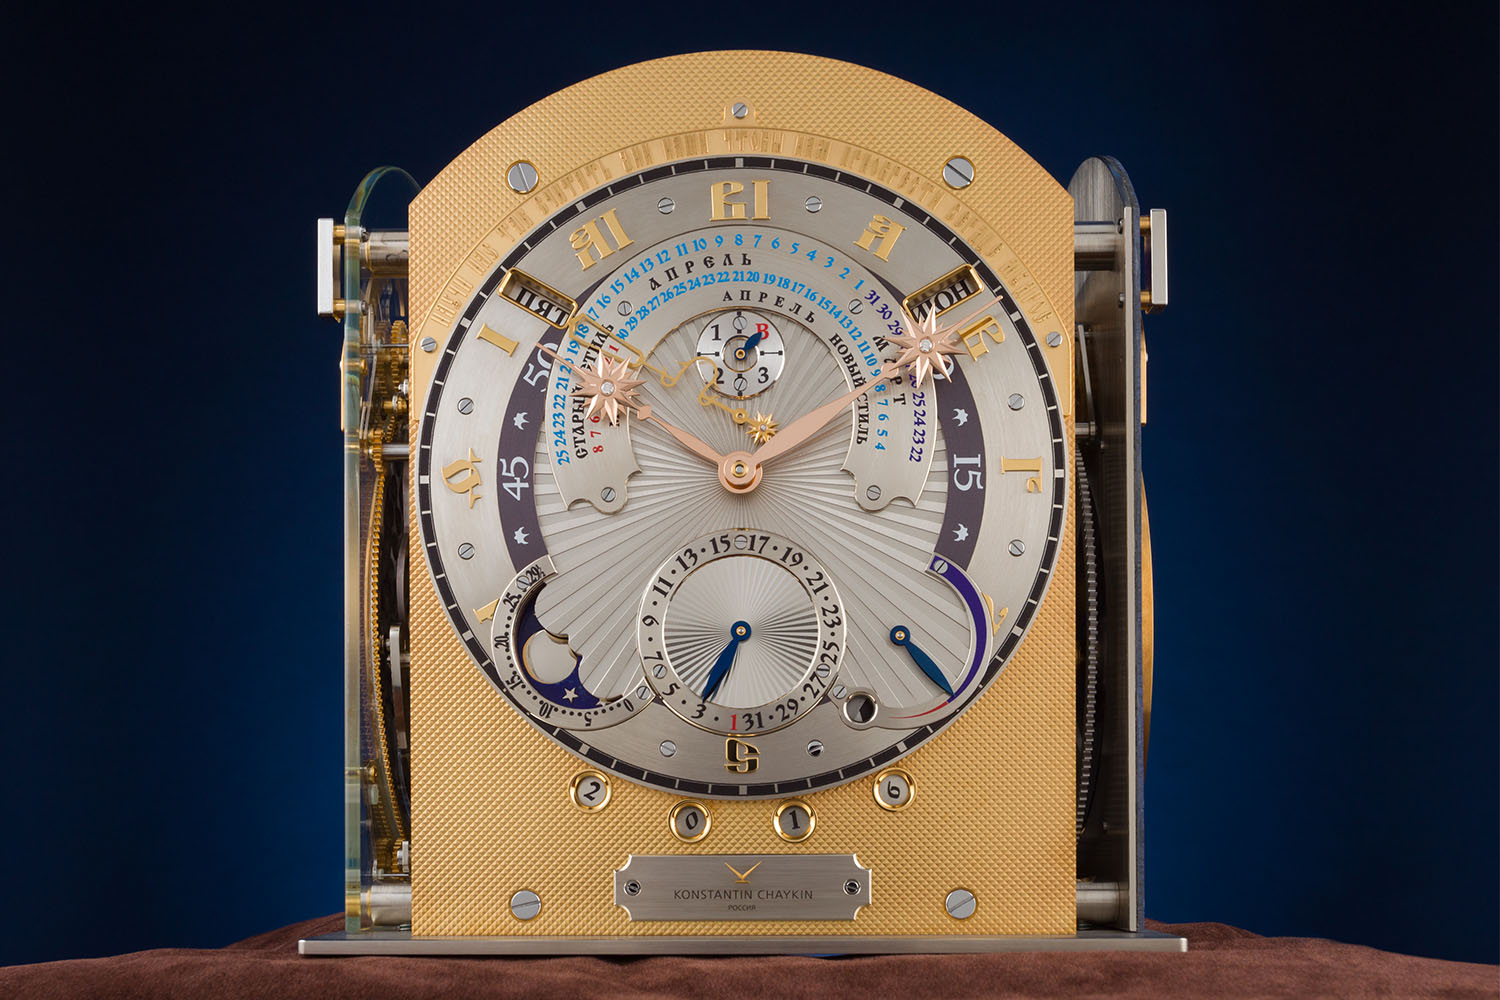 konstantin-chaykin-moscow-comptus-easter-clock-most-complicated-clock-ever-made-in-russia-5